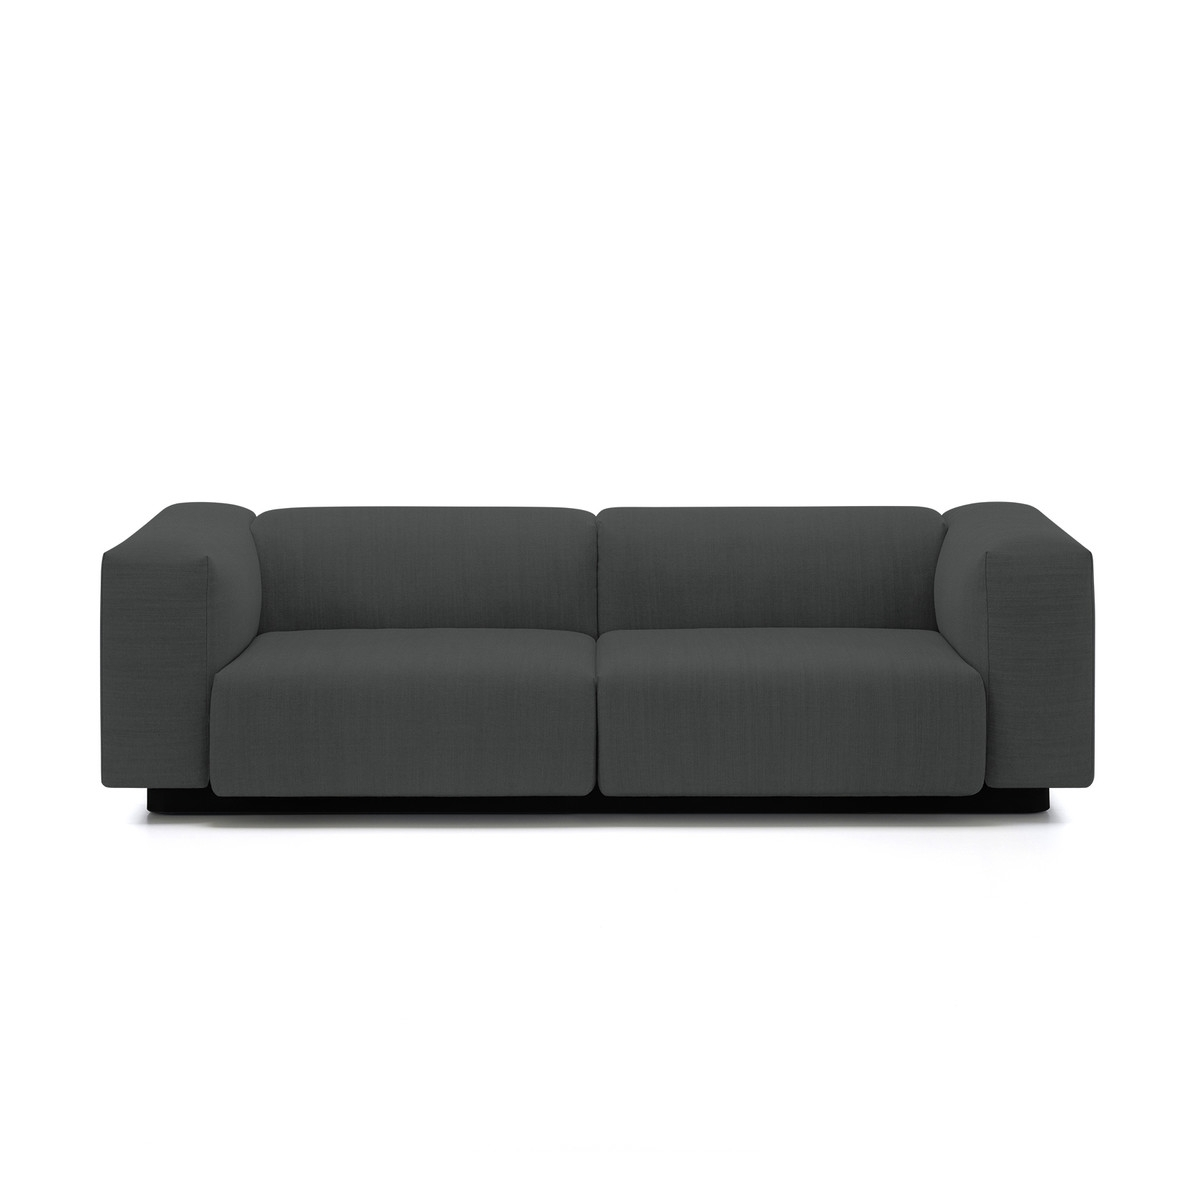 Most Up To Date Soft Modular 2 Seater Sofa From Vitra In The Connox Shop Pertaining To Soft Sofas (View 8 of 20)